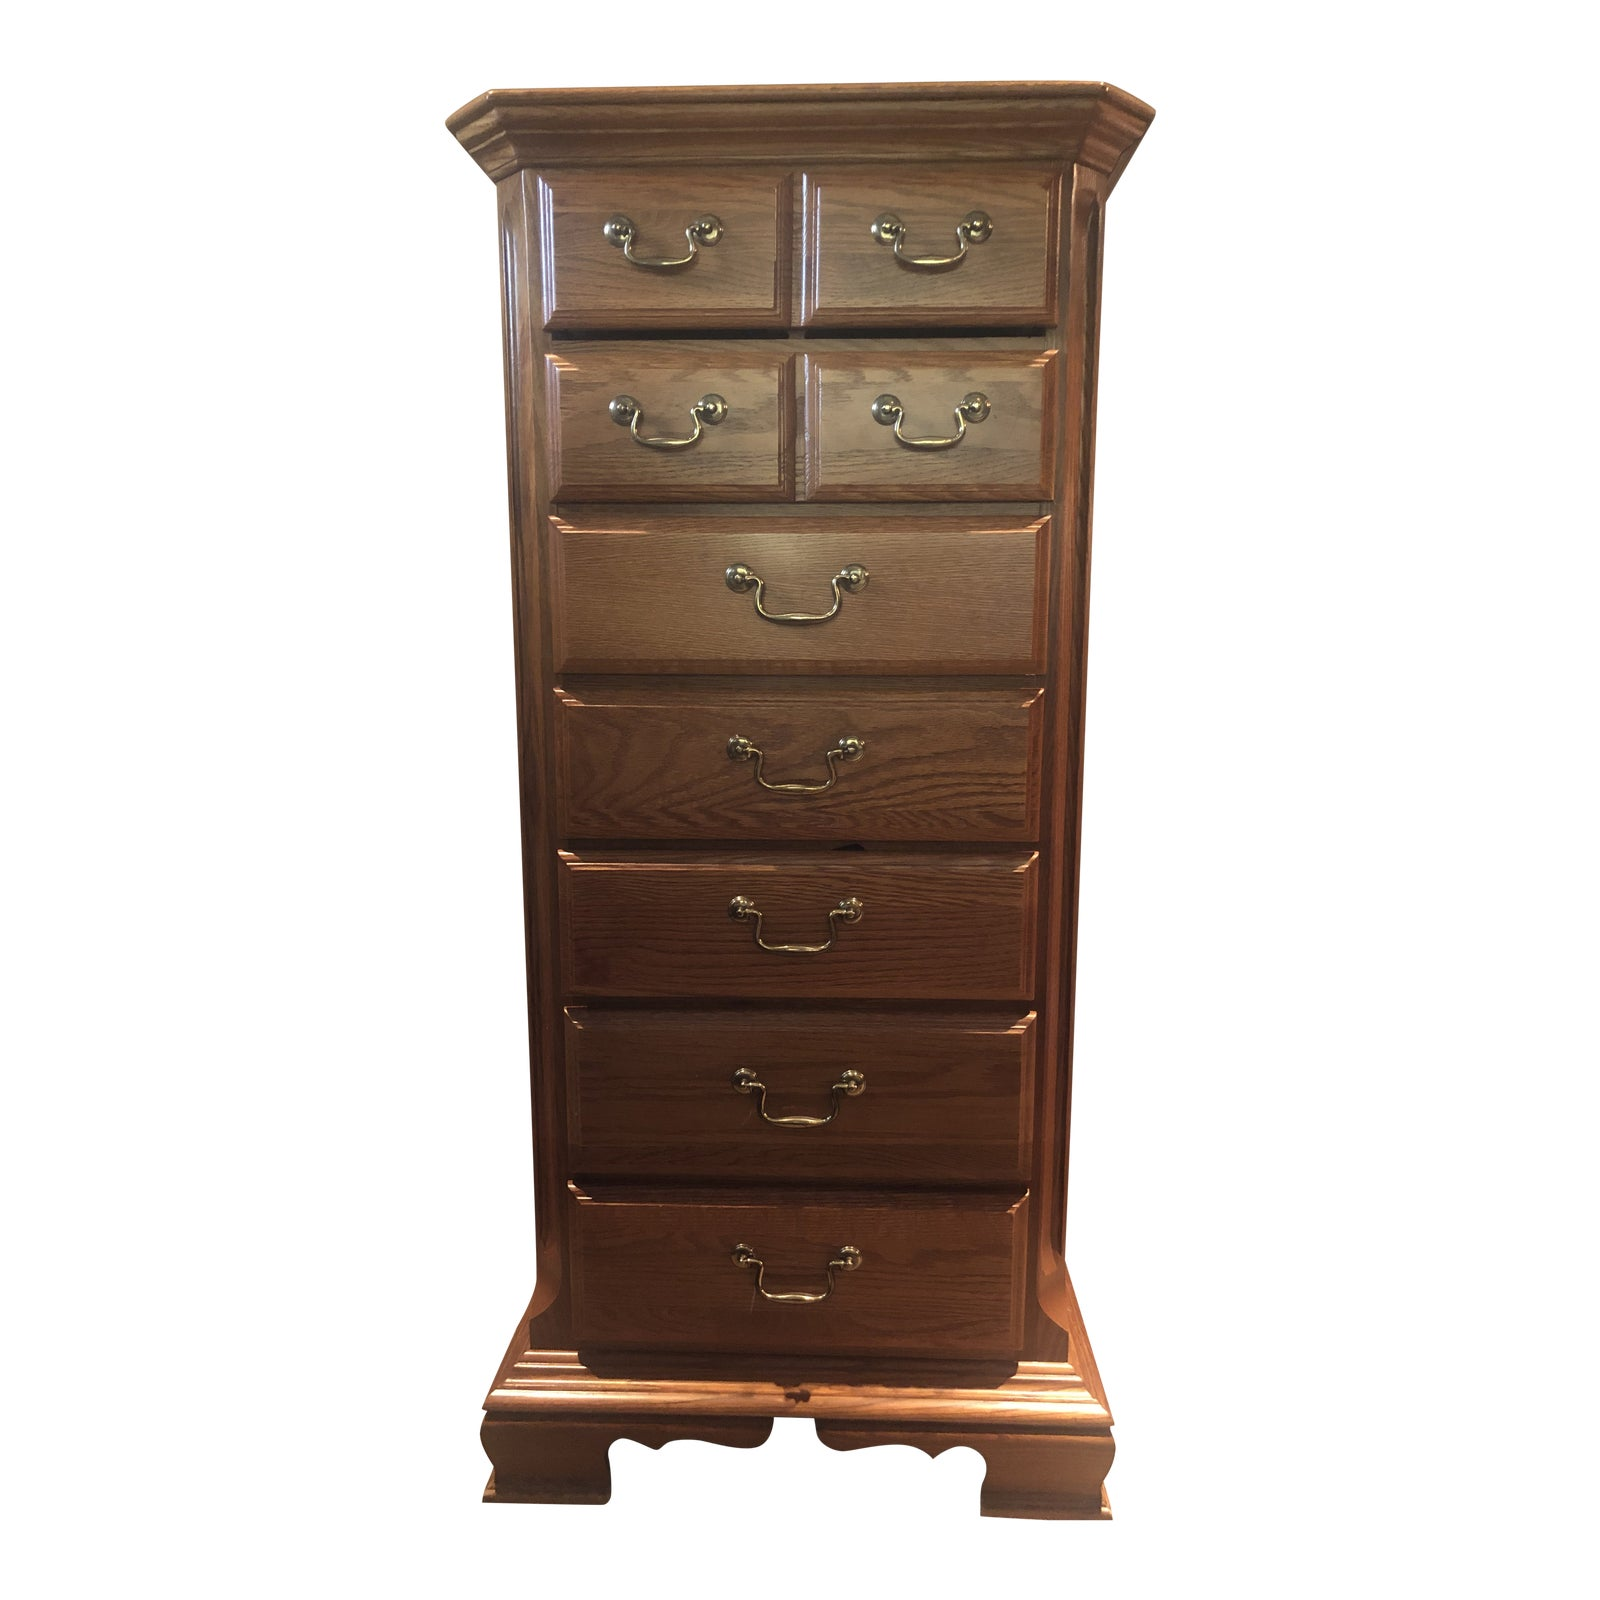 Sumter Cabinet Company Lingerie Chest Chairish